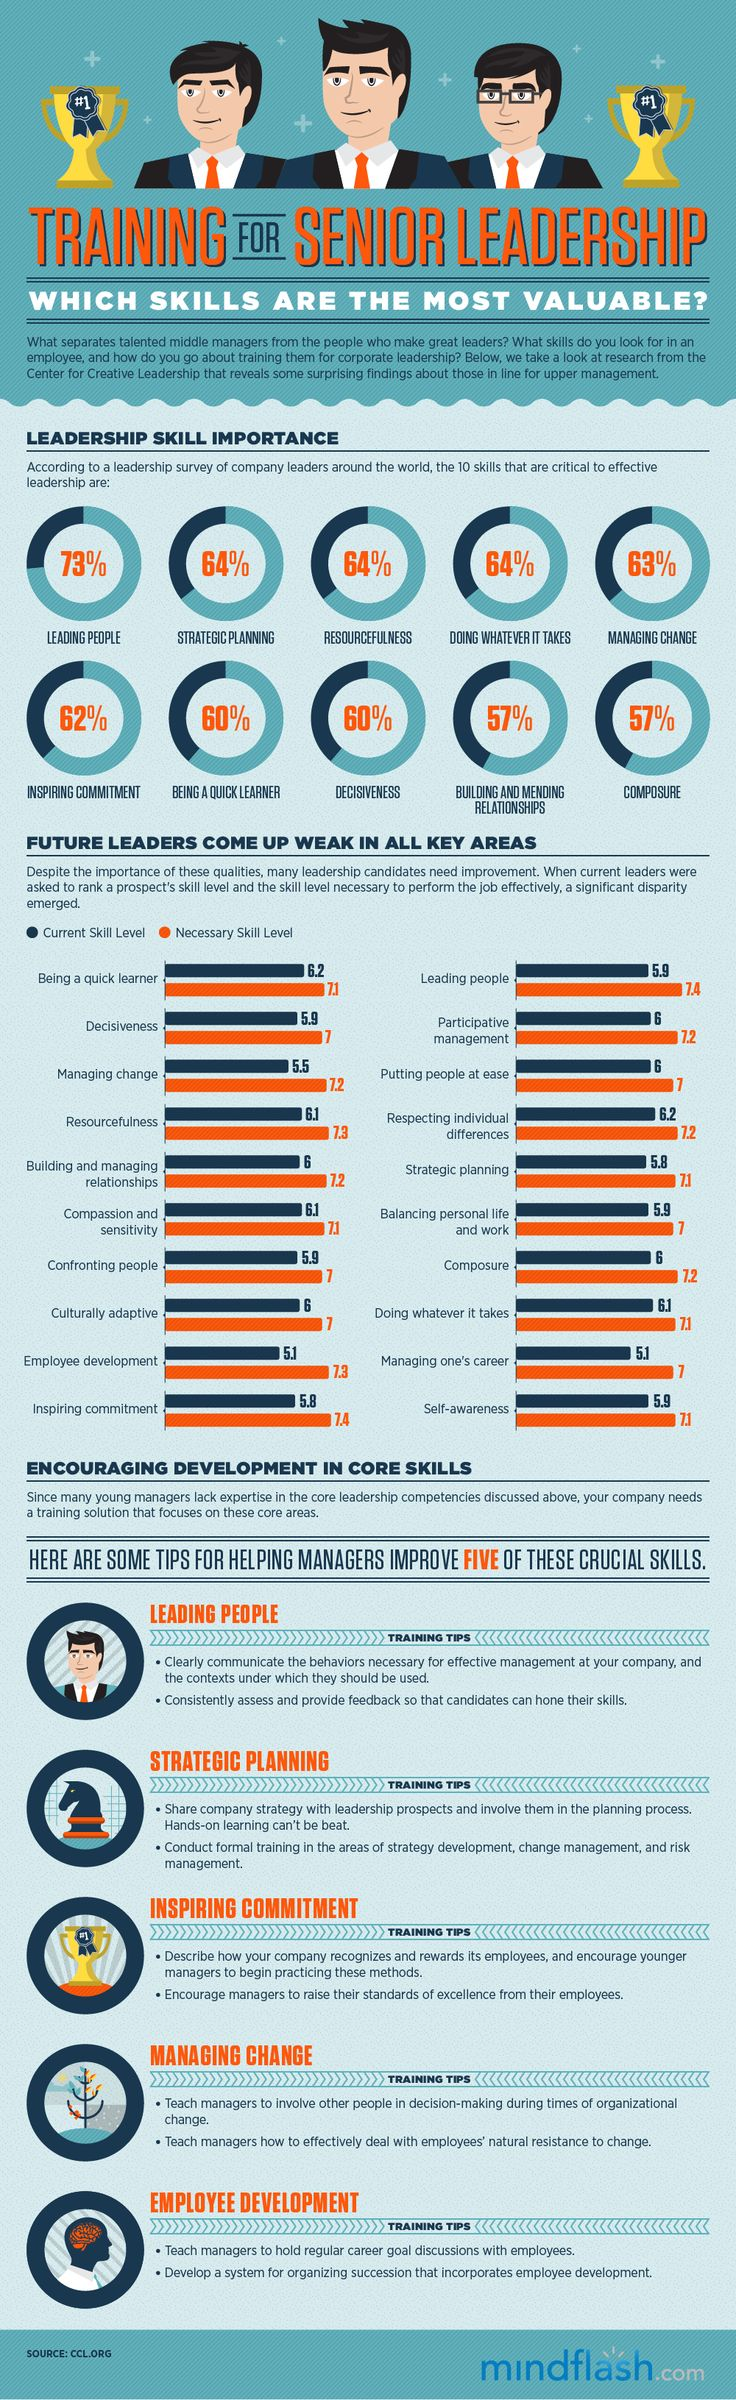 The Most Valuable Leadership Skills #HR #infographic